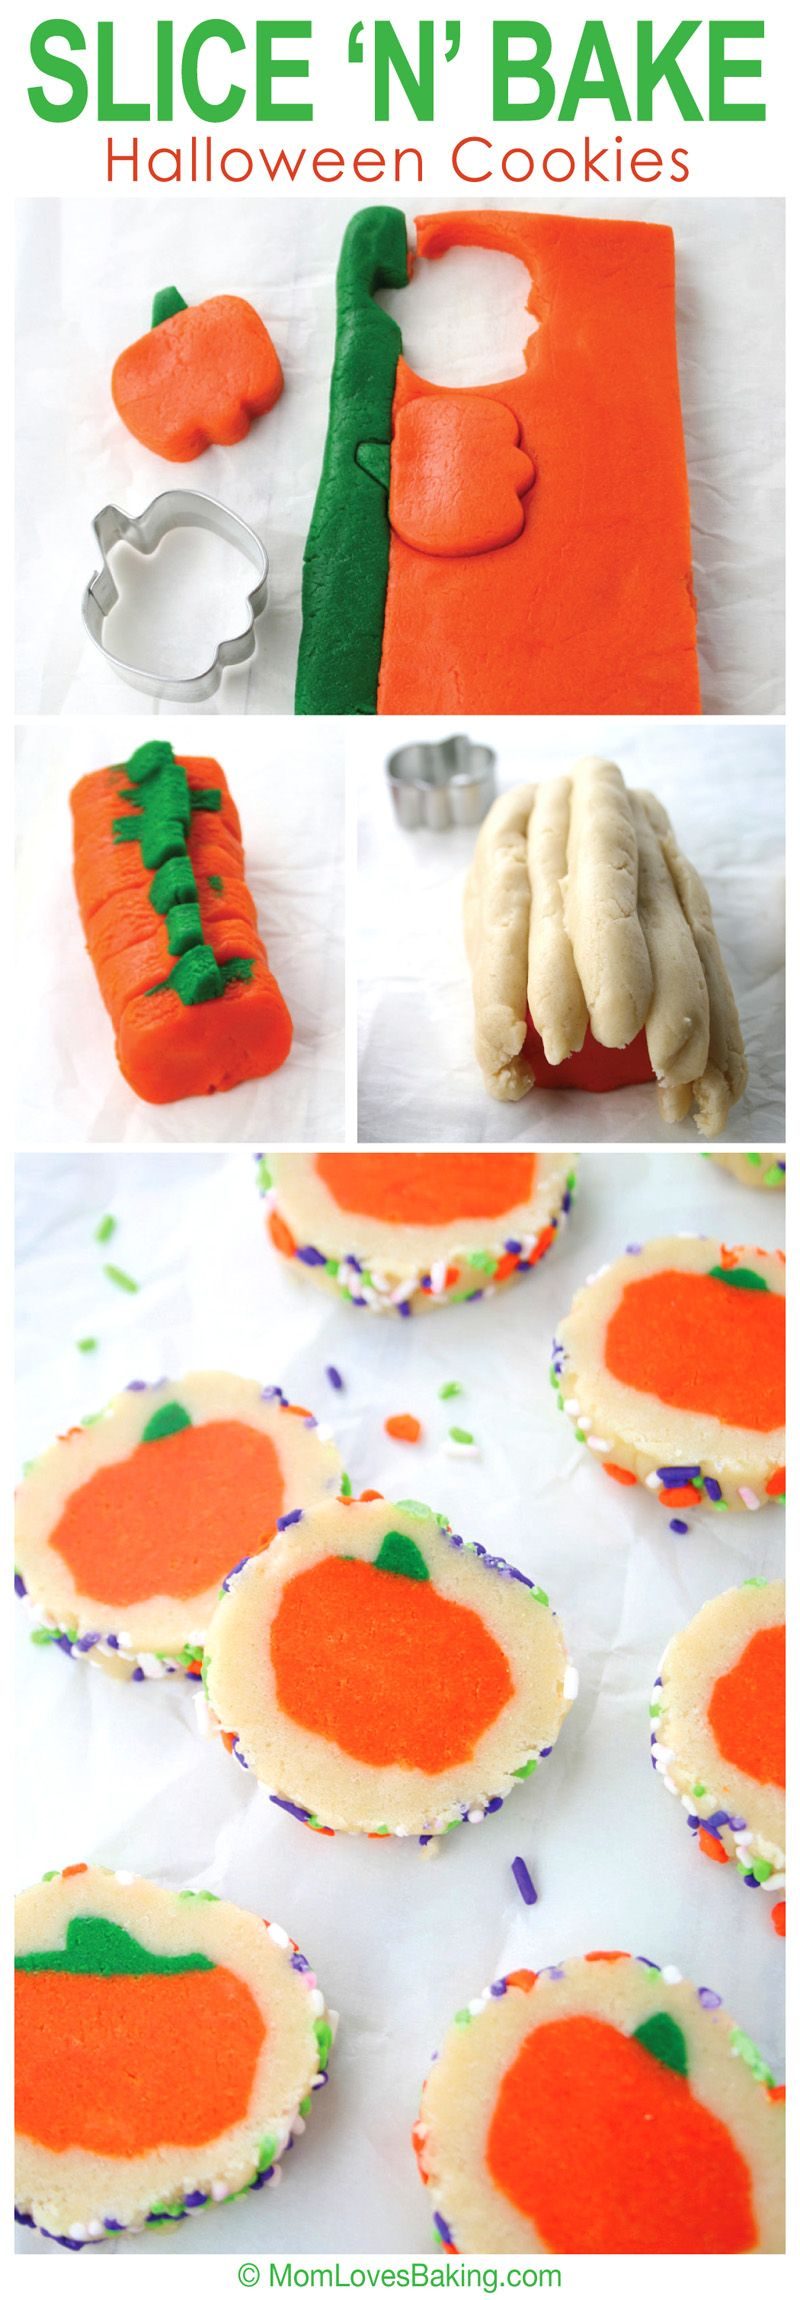 Do it yourself sugar cookies with surprise inside pumpkins for Halloween. /explore/DIY/ /search/?q=%23Tutorial&rs=hashtag